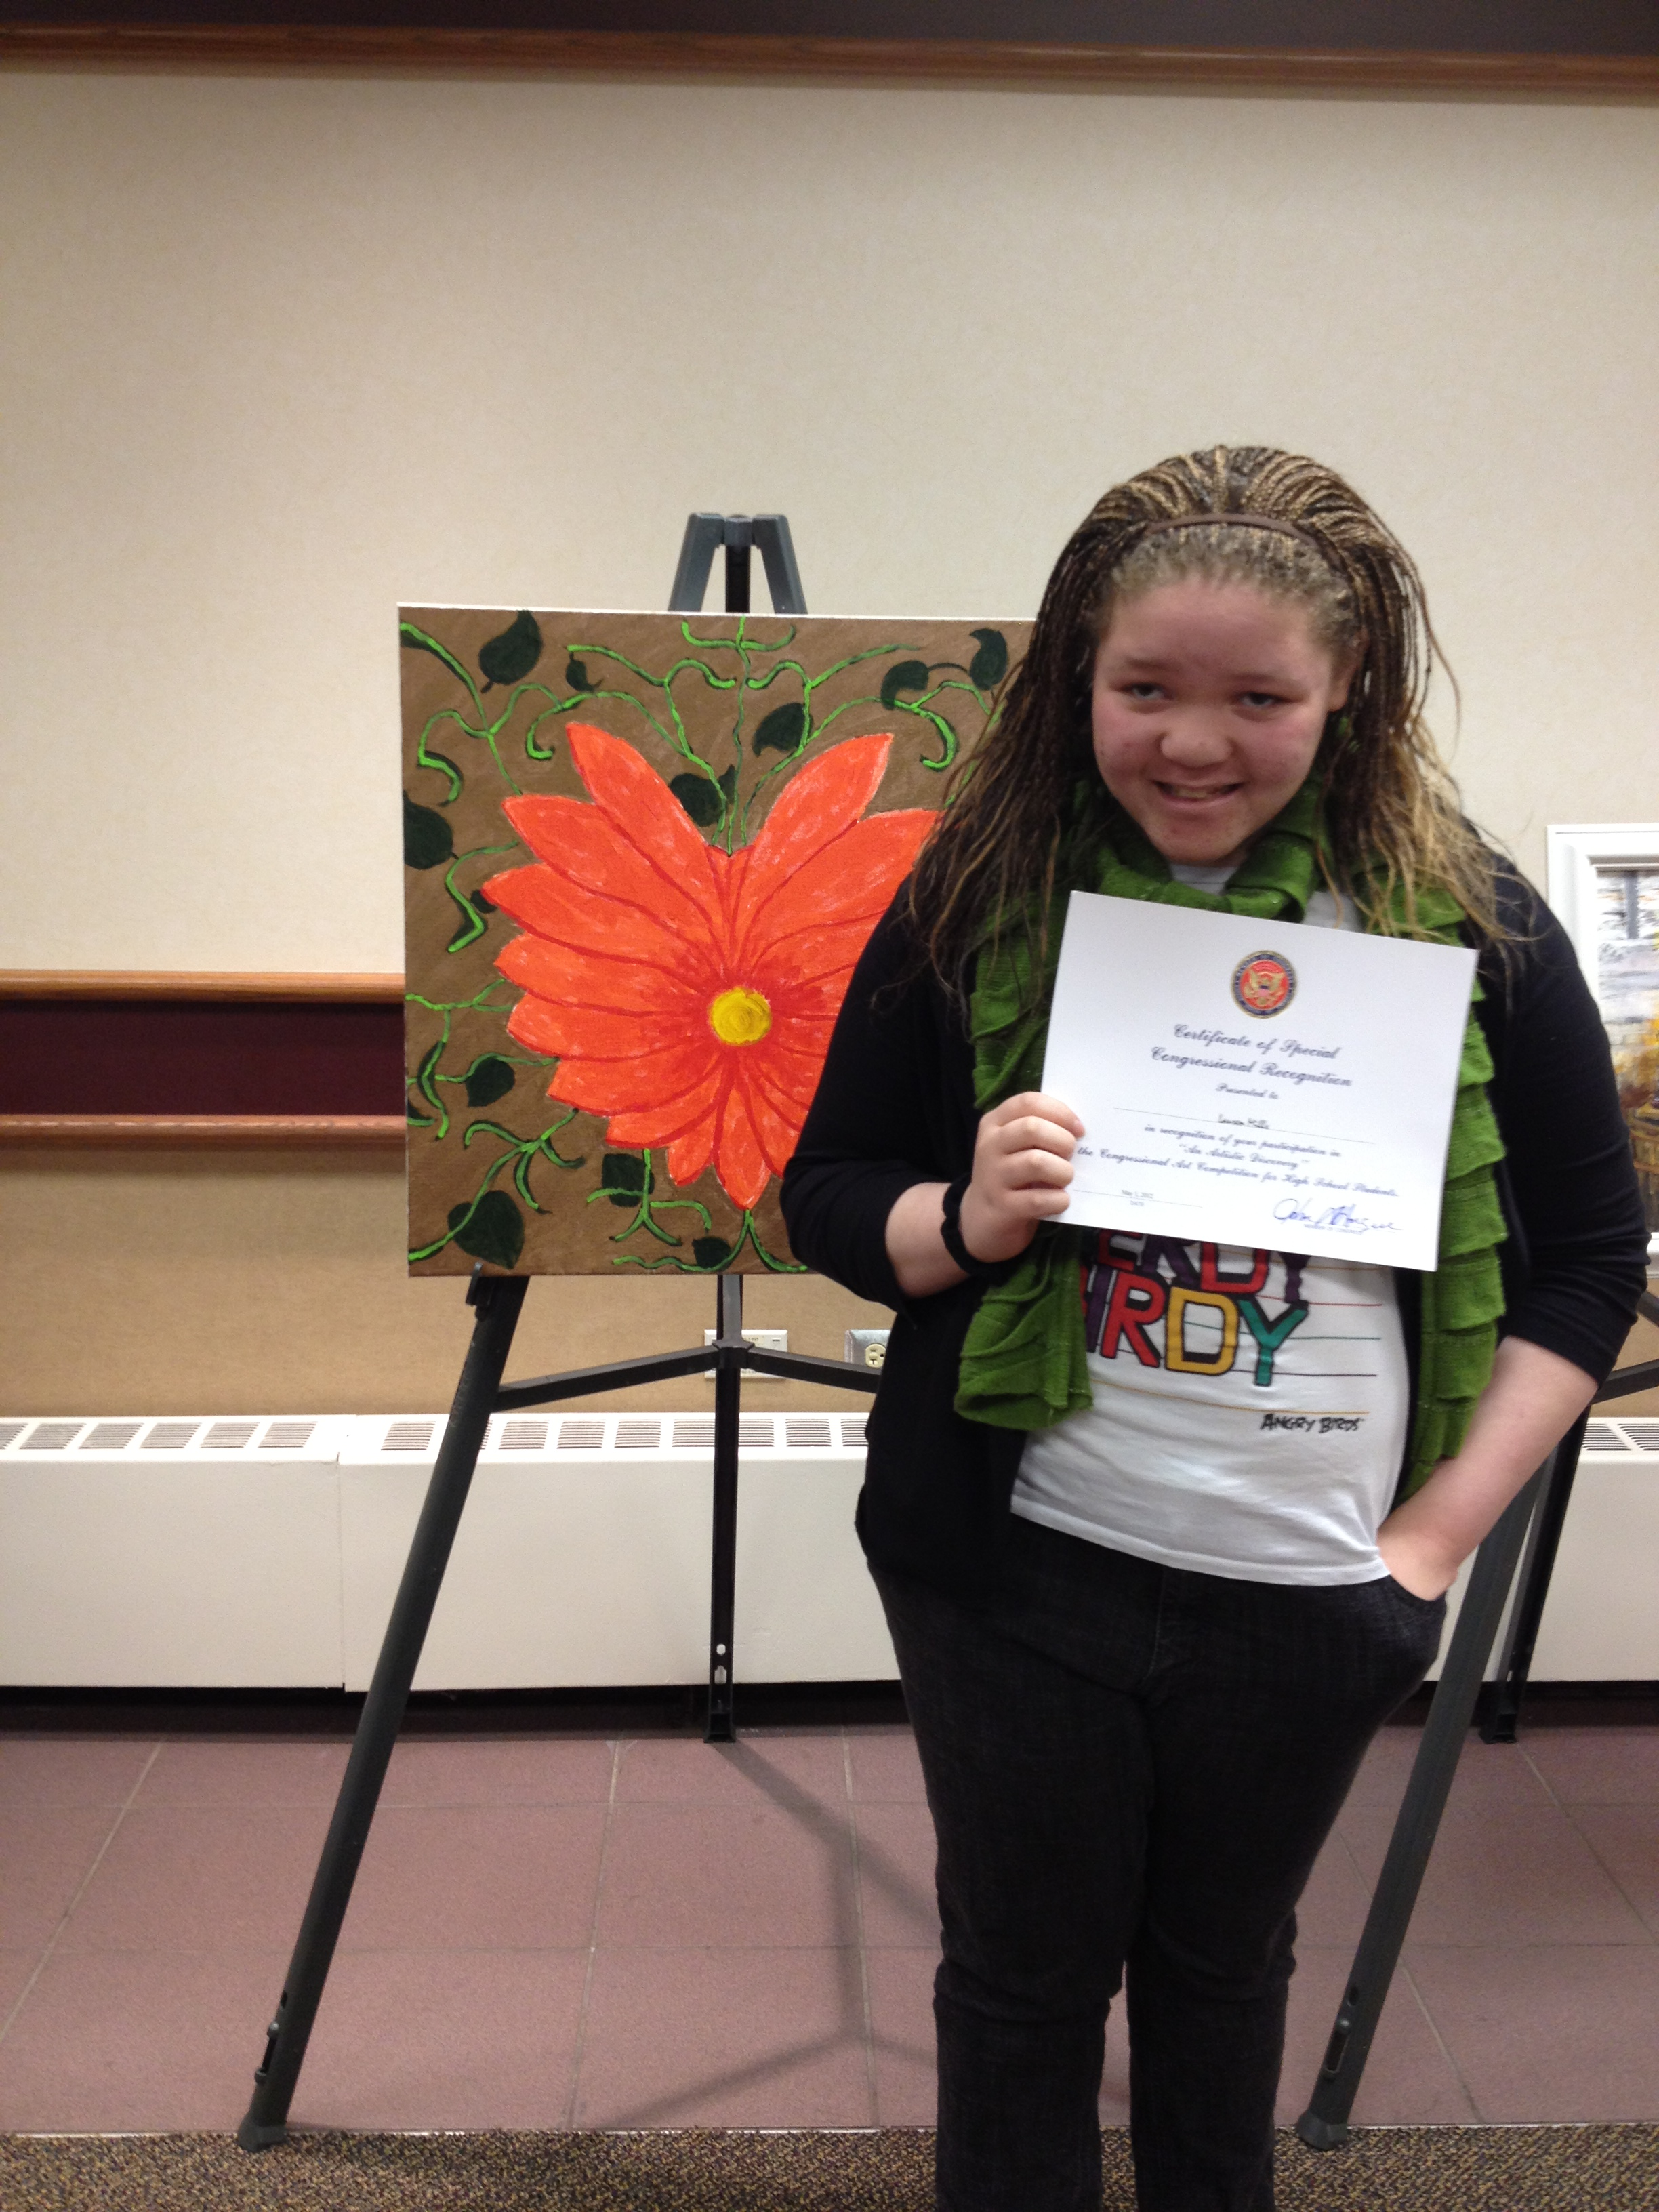 At age 12, Lauren participated in Senator John Dingell's Art Competition for Southeastern Michigan's top high school artists.